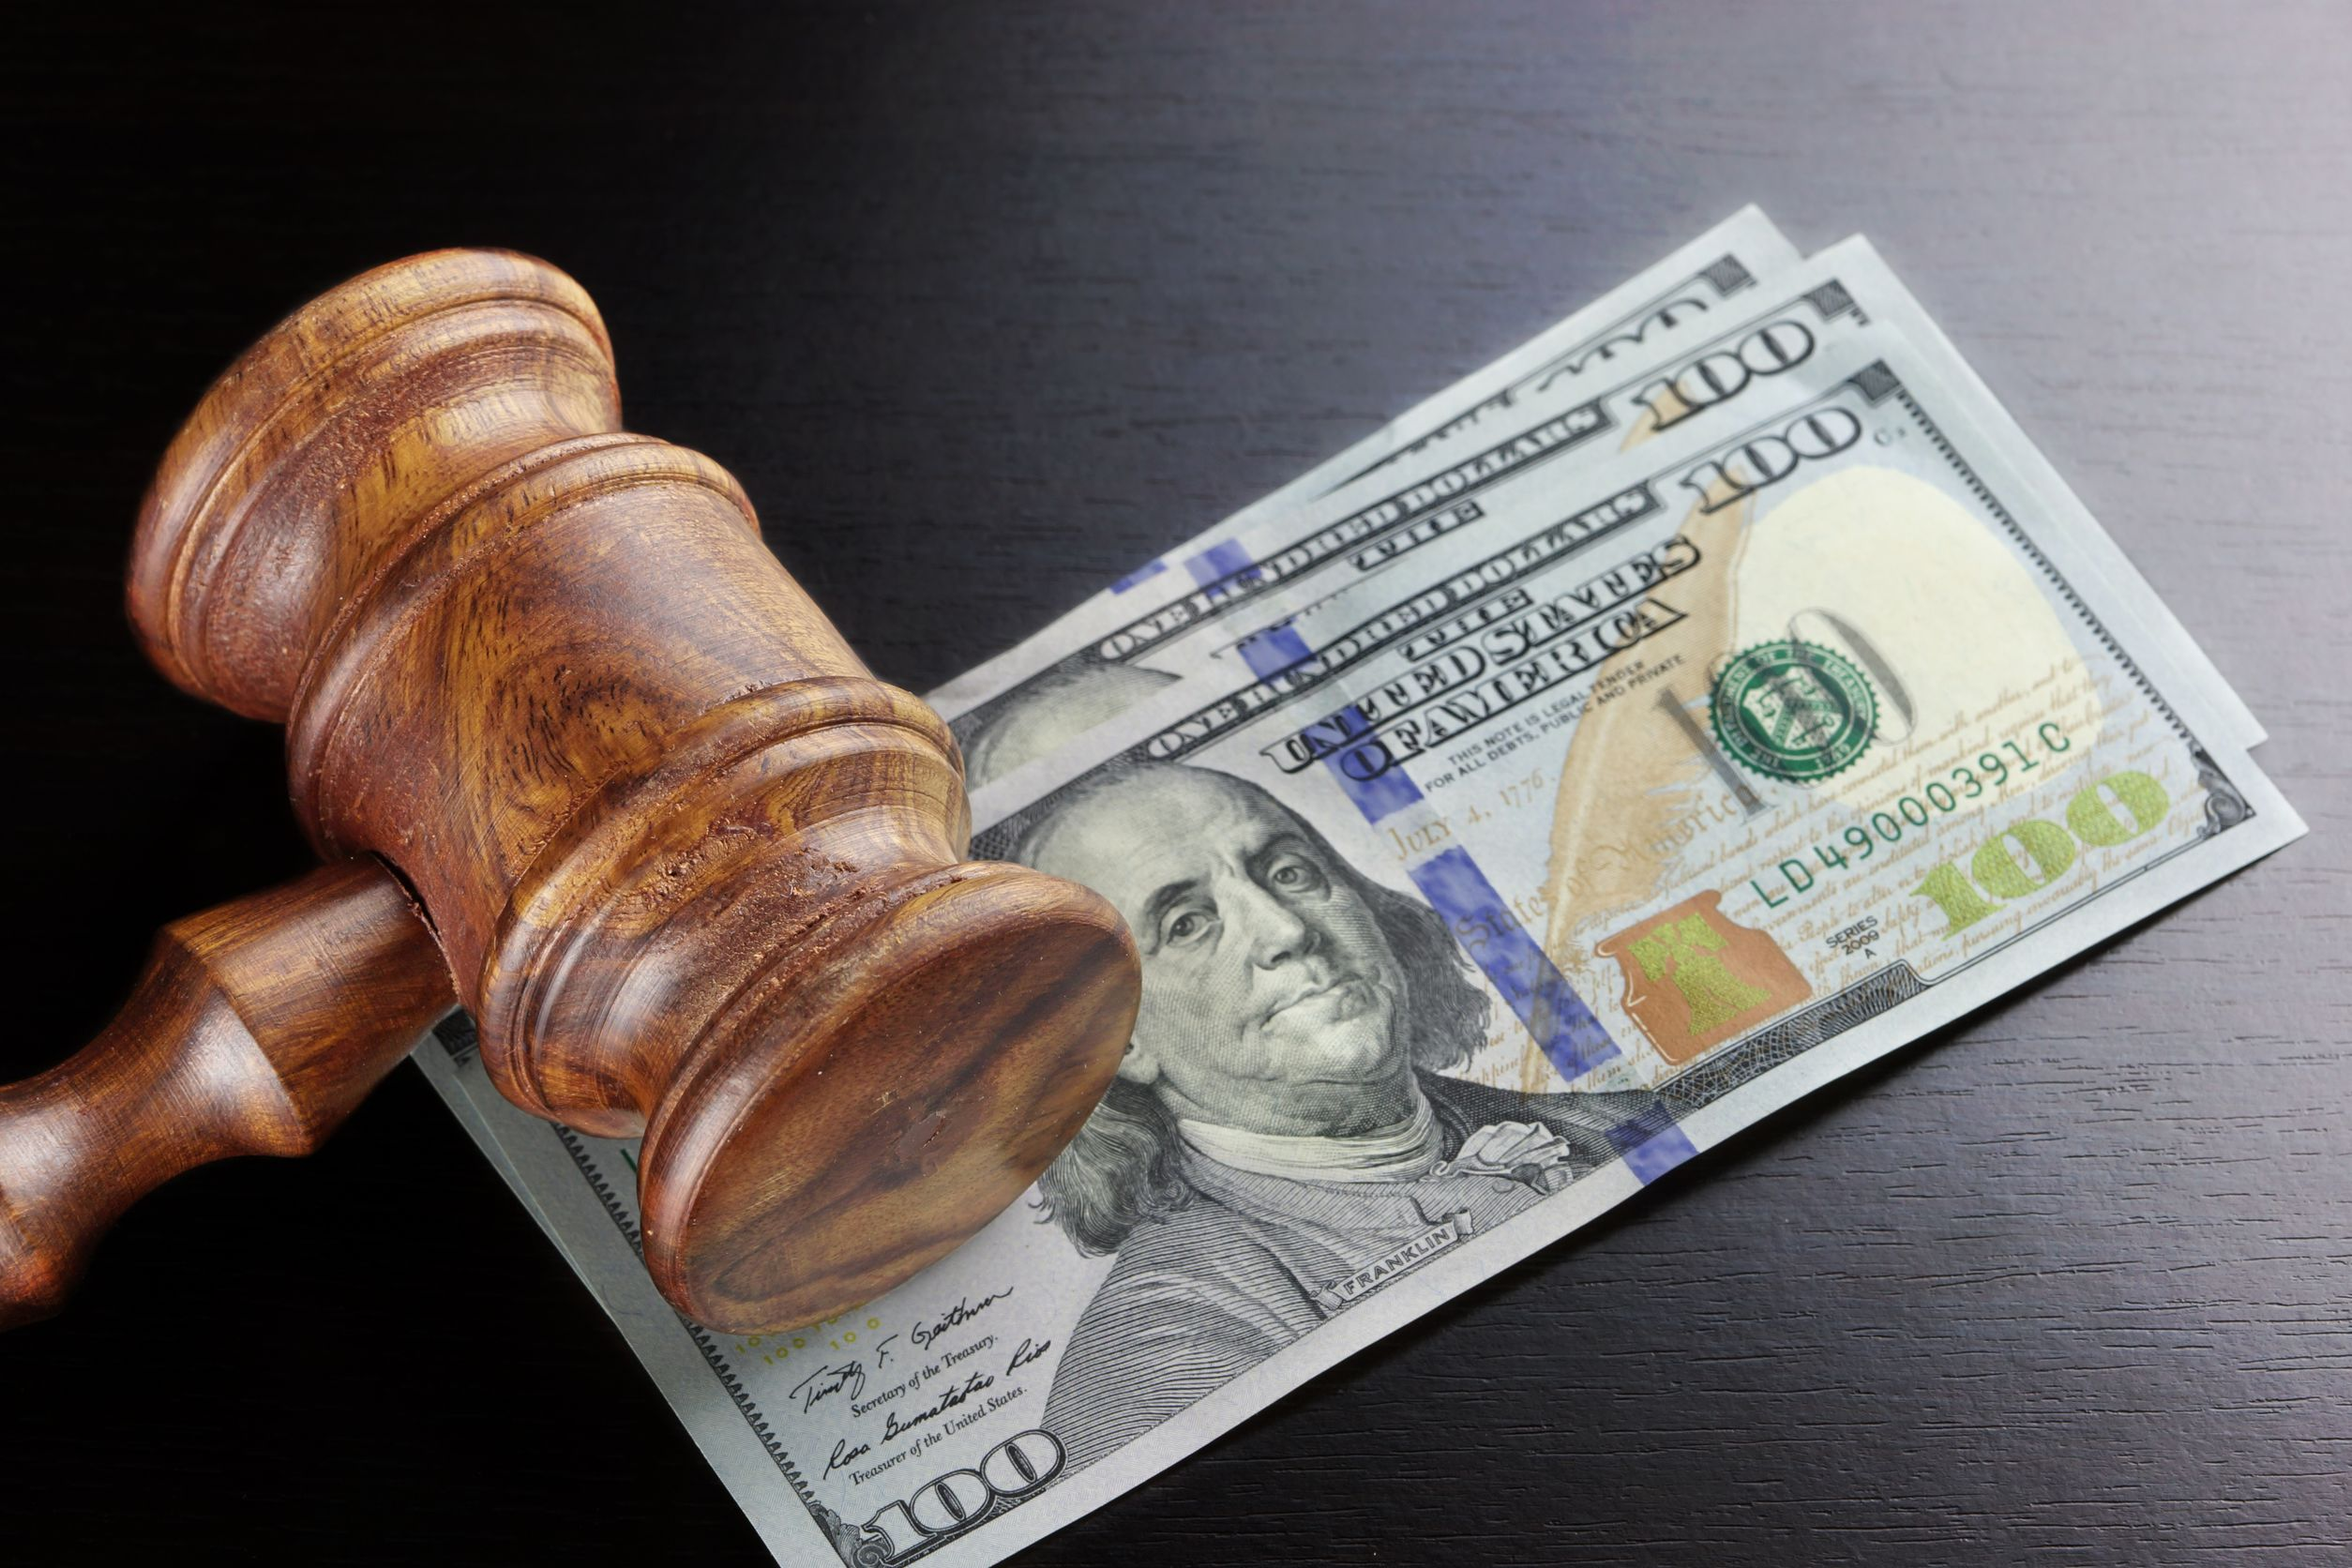 Specific Instances that can Compel a Judge to Deny Bail